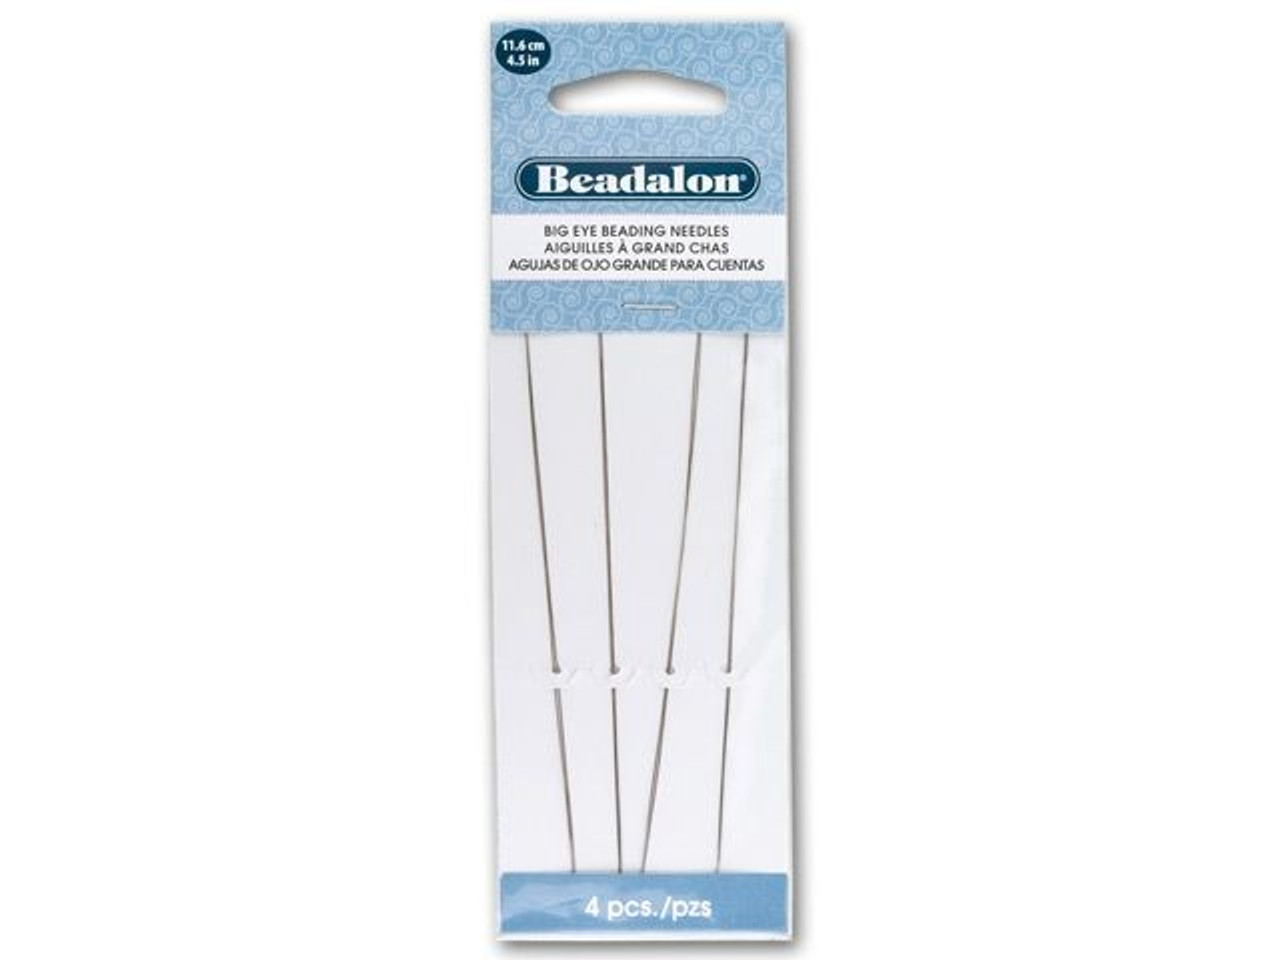 Beadalon Collapsible Eye Needles 2.5-Inch Heavy 4 Pack 3 Pack